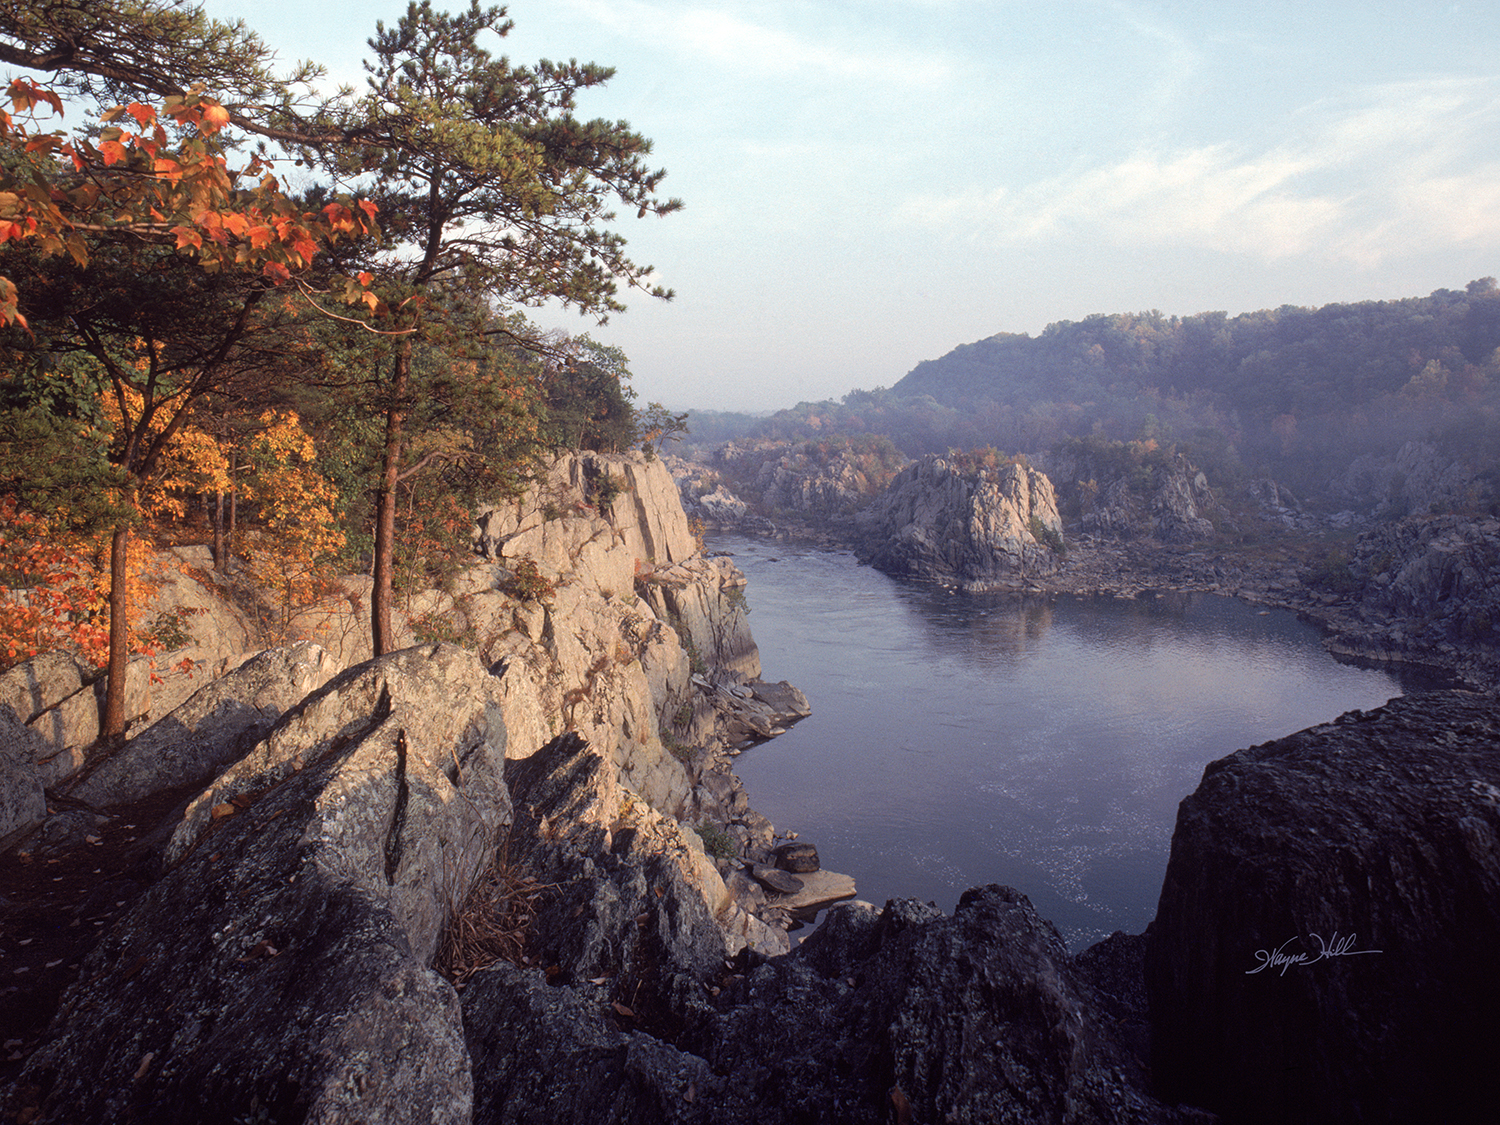 October at Mather Gorge